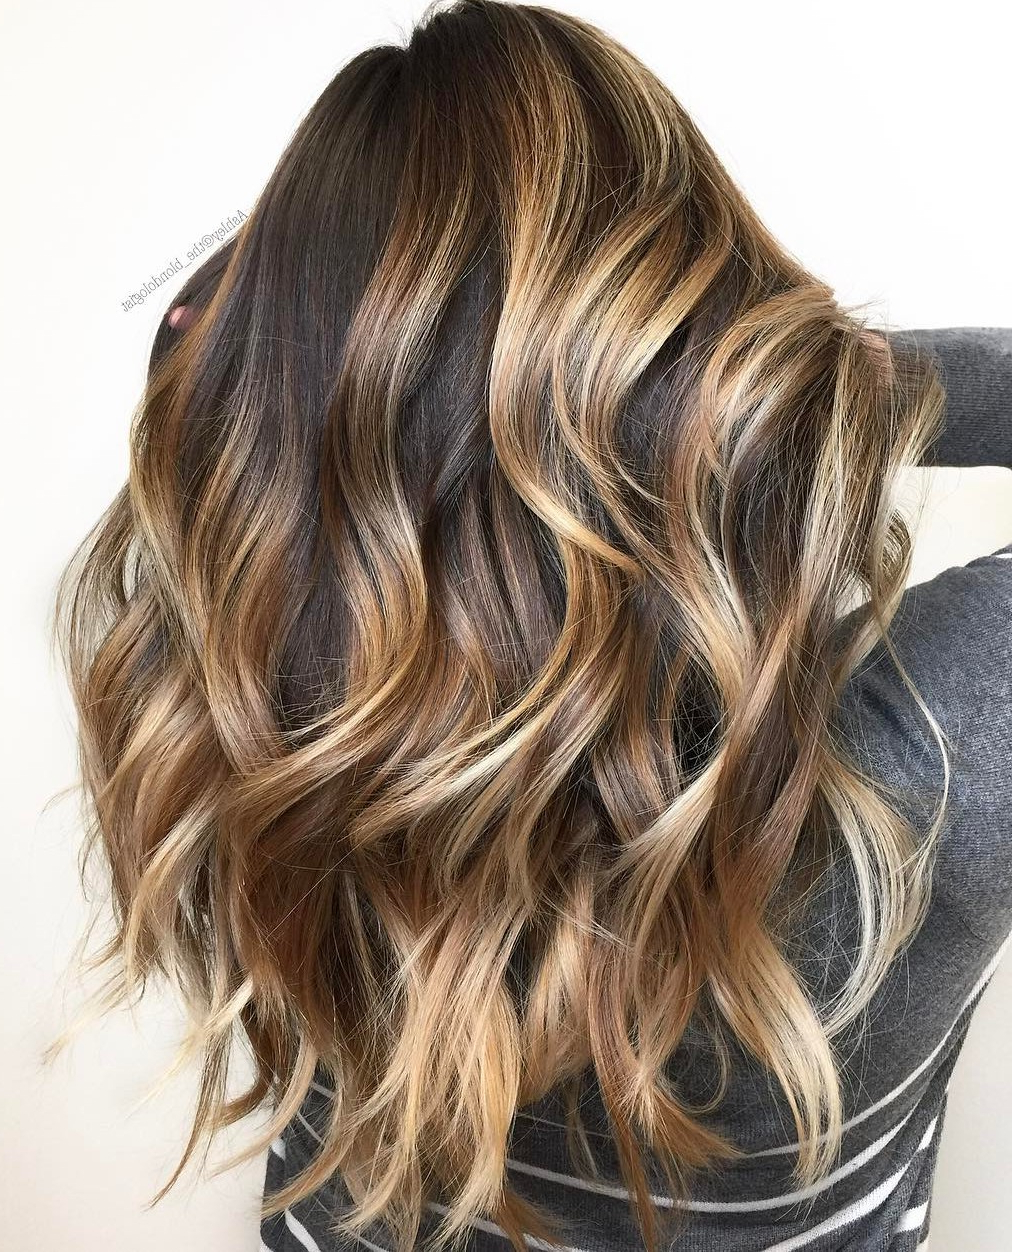 Popular Long Voluminous Ombre Hairstyles With Layers Regarding 20 Head Turning Haircuts And Hairstyles For Long Thick Hair (View 6 of 20)